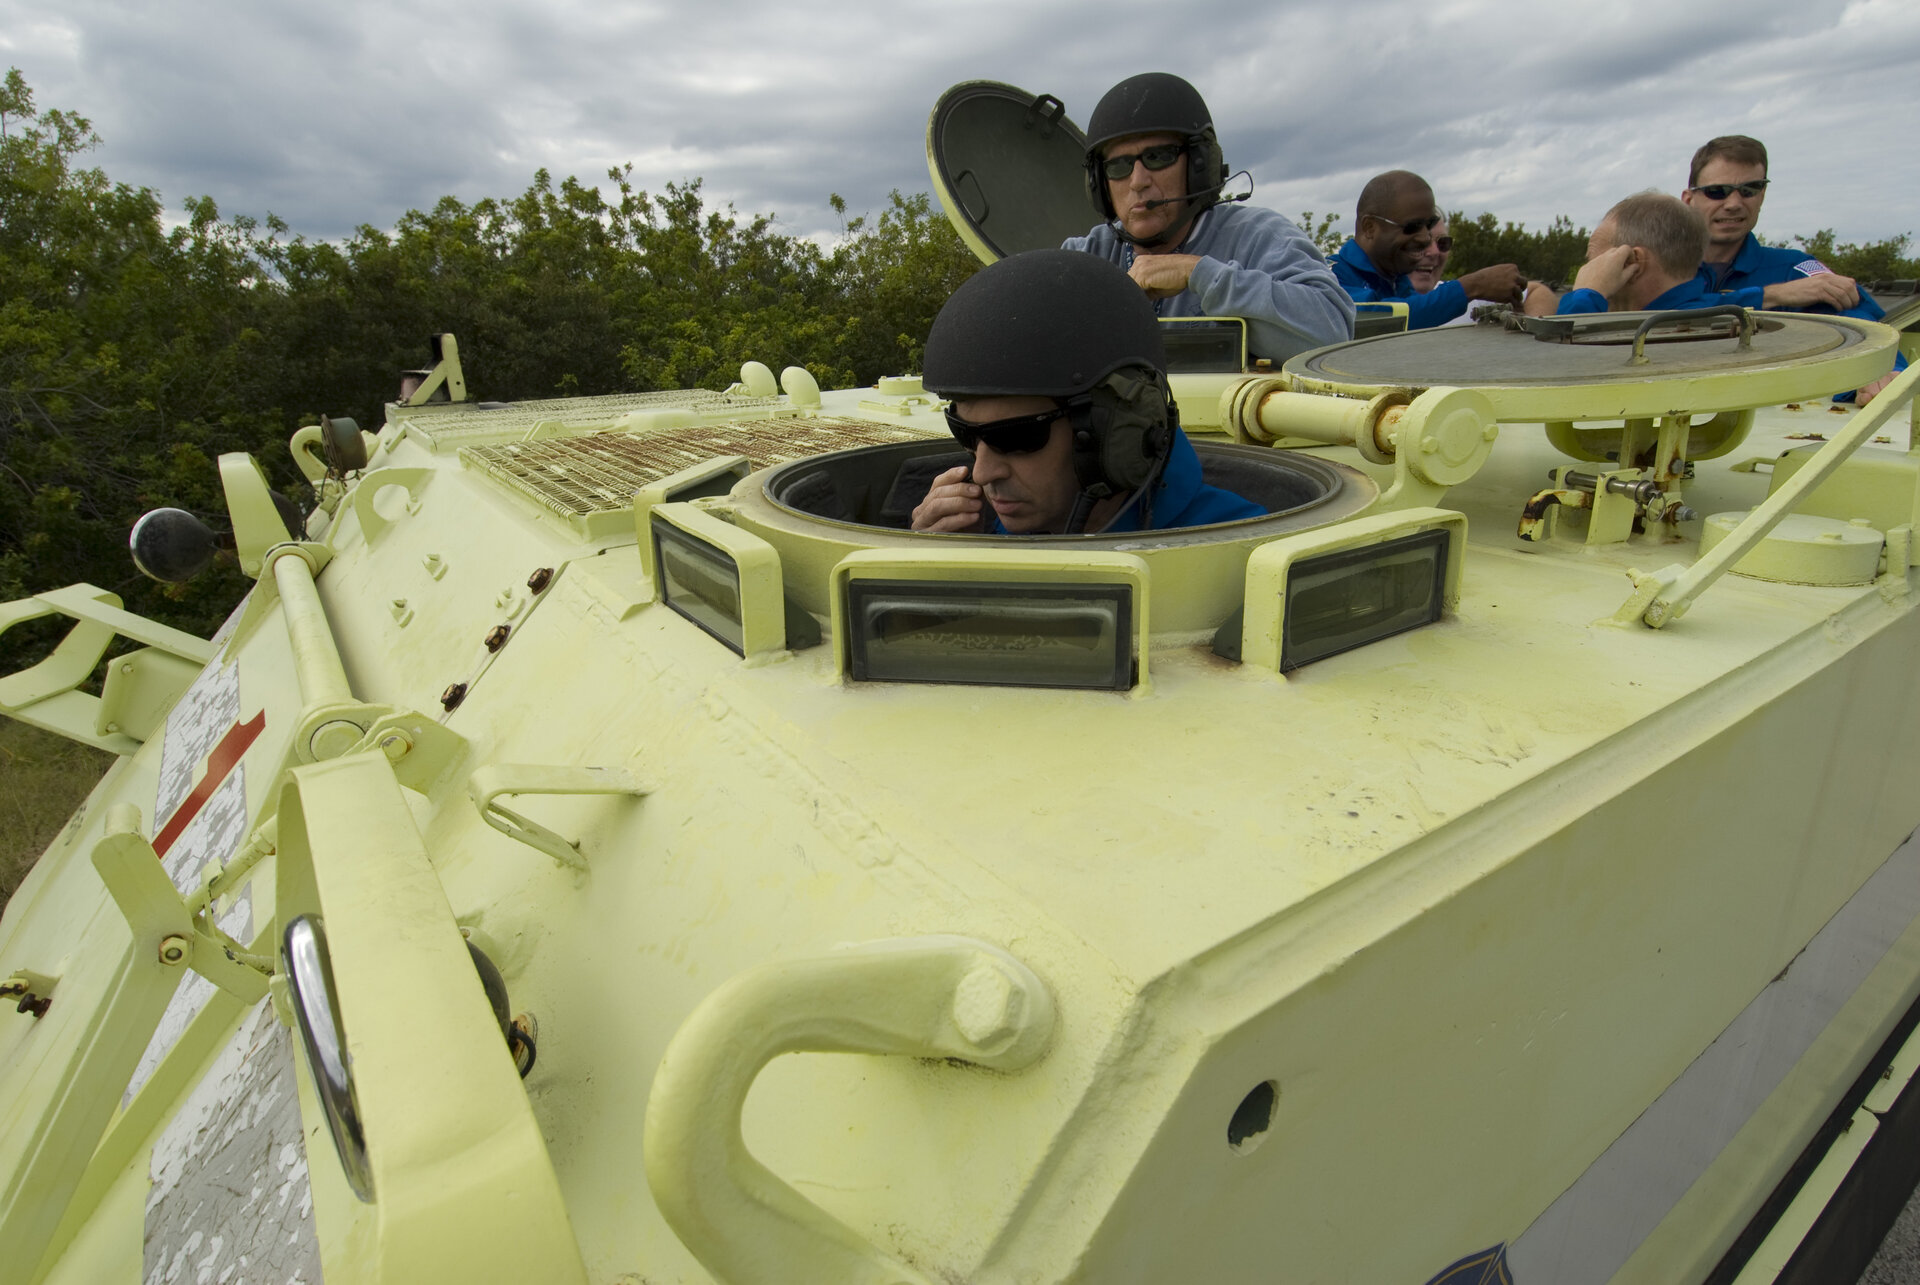 Léopold Eyharts practices driving an emergency evacuation vehicle during training at Kennedy Space Center, Florida